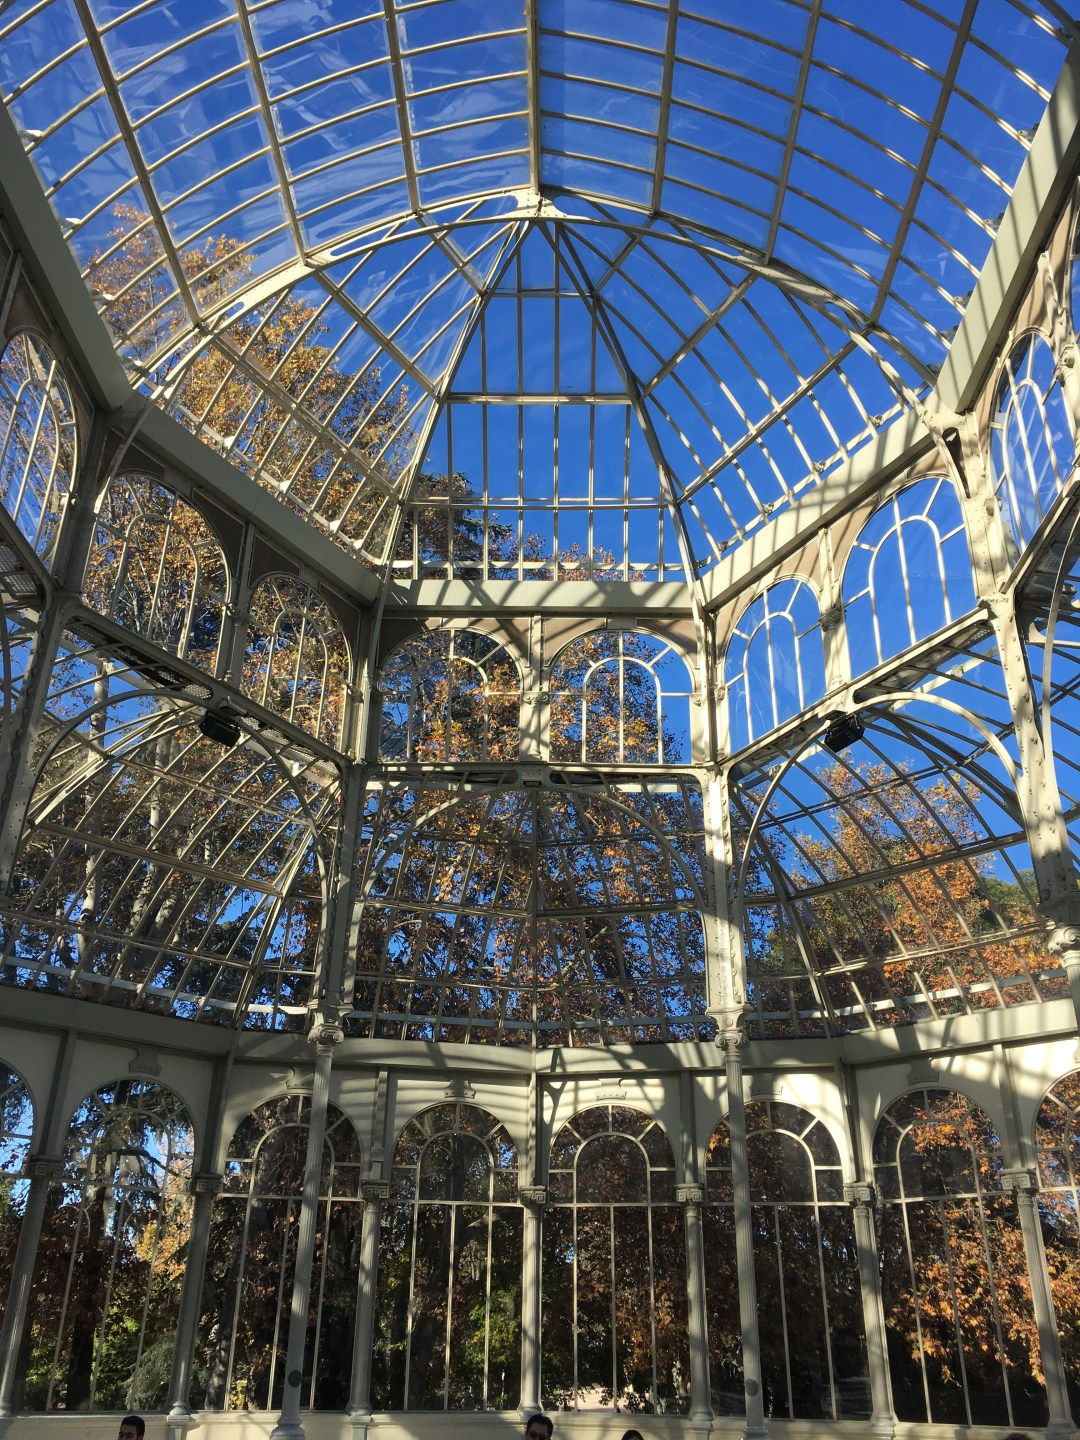 Inside the Palacio de Cristal in Buen Retiro park, Madrid